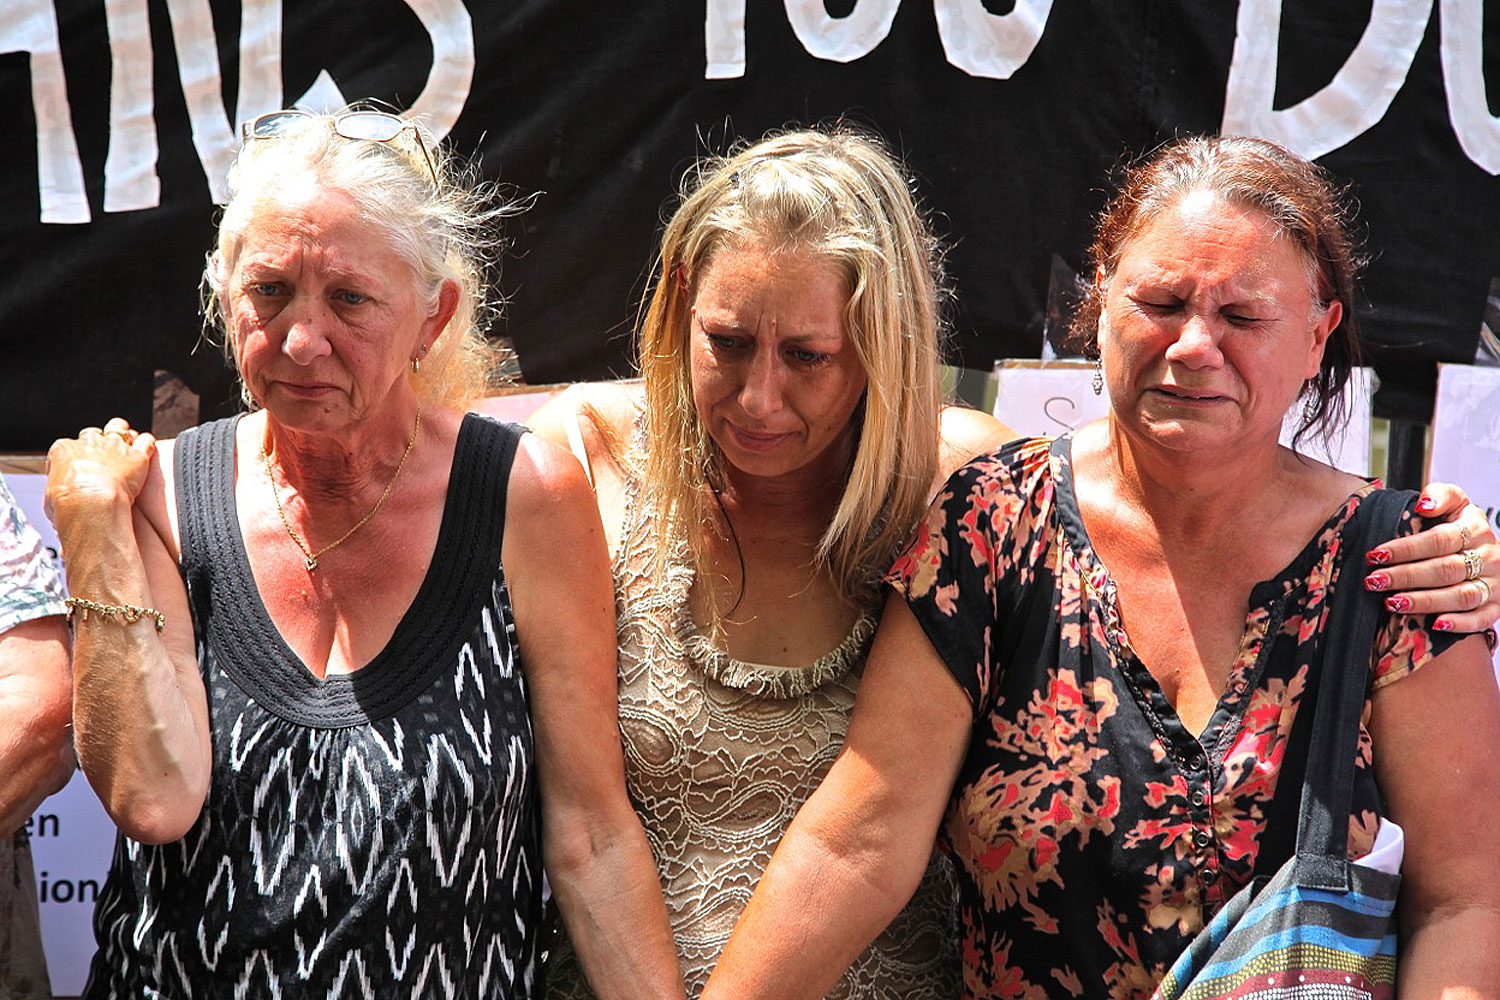 Members of Grandmothers Against Removals protesting against the overrepresentation of indigenous children in the child-protection system on the steps of the parliament house of New South Wales in Sydney on Feb. 13, 2014